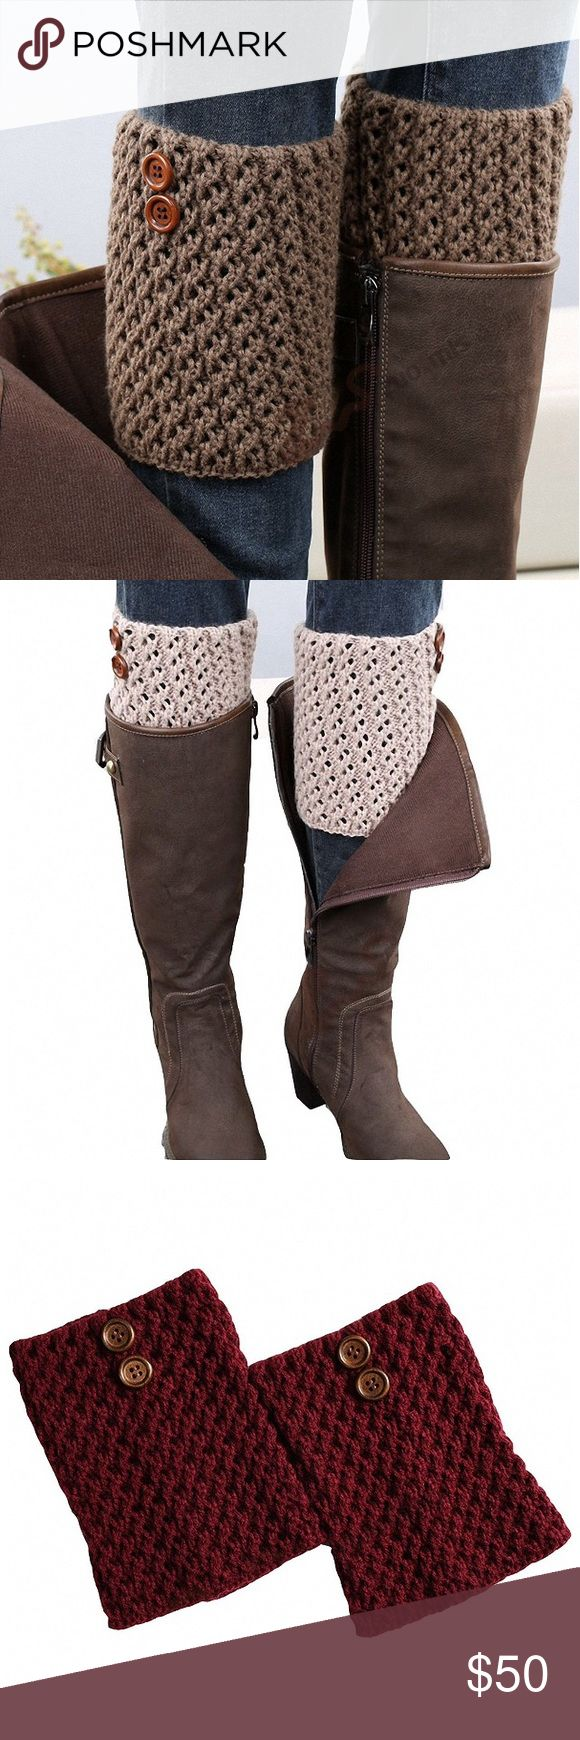 Crochet Boot Cuffs Two Button Detail Leg Warmers Boot cuffs are the perfect winter accessory. The look of leg warmers or boot socks without all the bulk. These have a cute button detail and a chunky, cozy knit.  Black Charcoal Grey Chocolate Beige Burgundy  ❌ Sorry, no trades. fairlygirly Accessories Hosiery & Socks